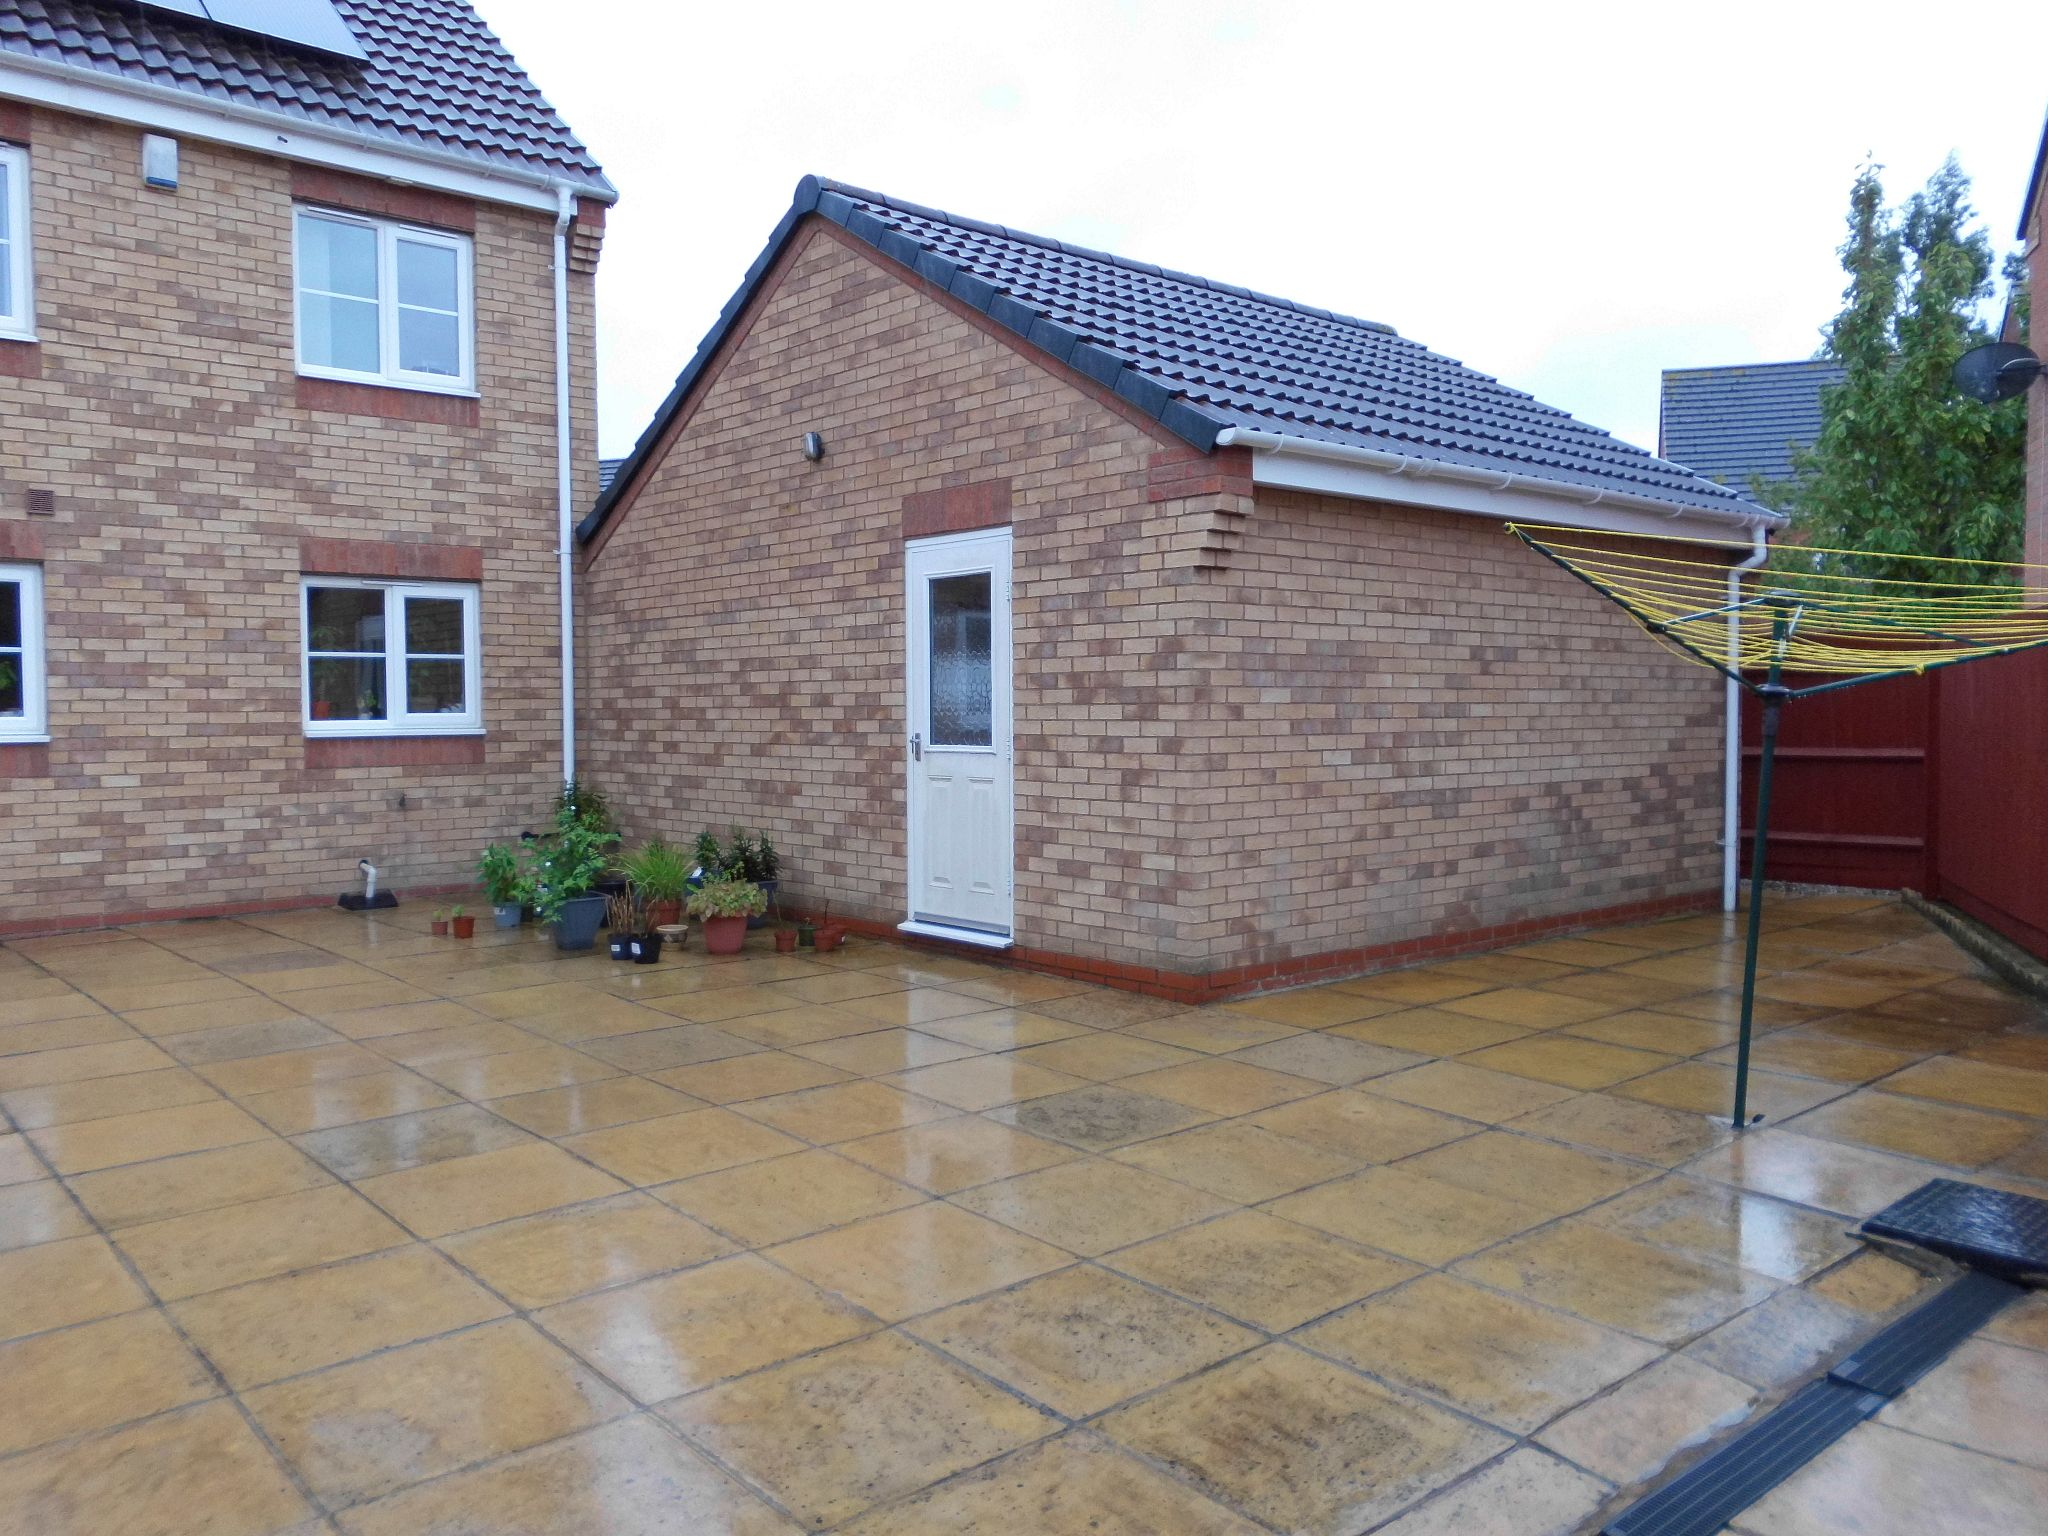 4 bedroom detached house SSTC in Leicester - Photograph 16.